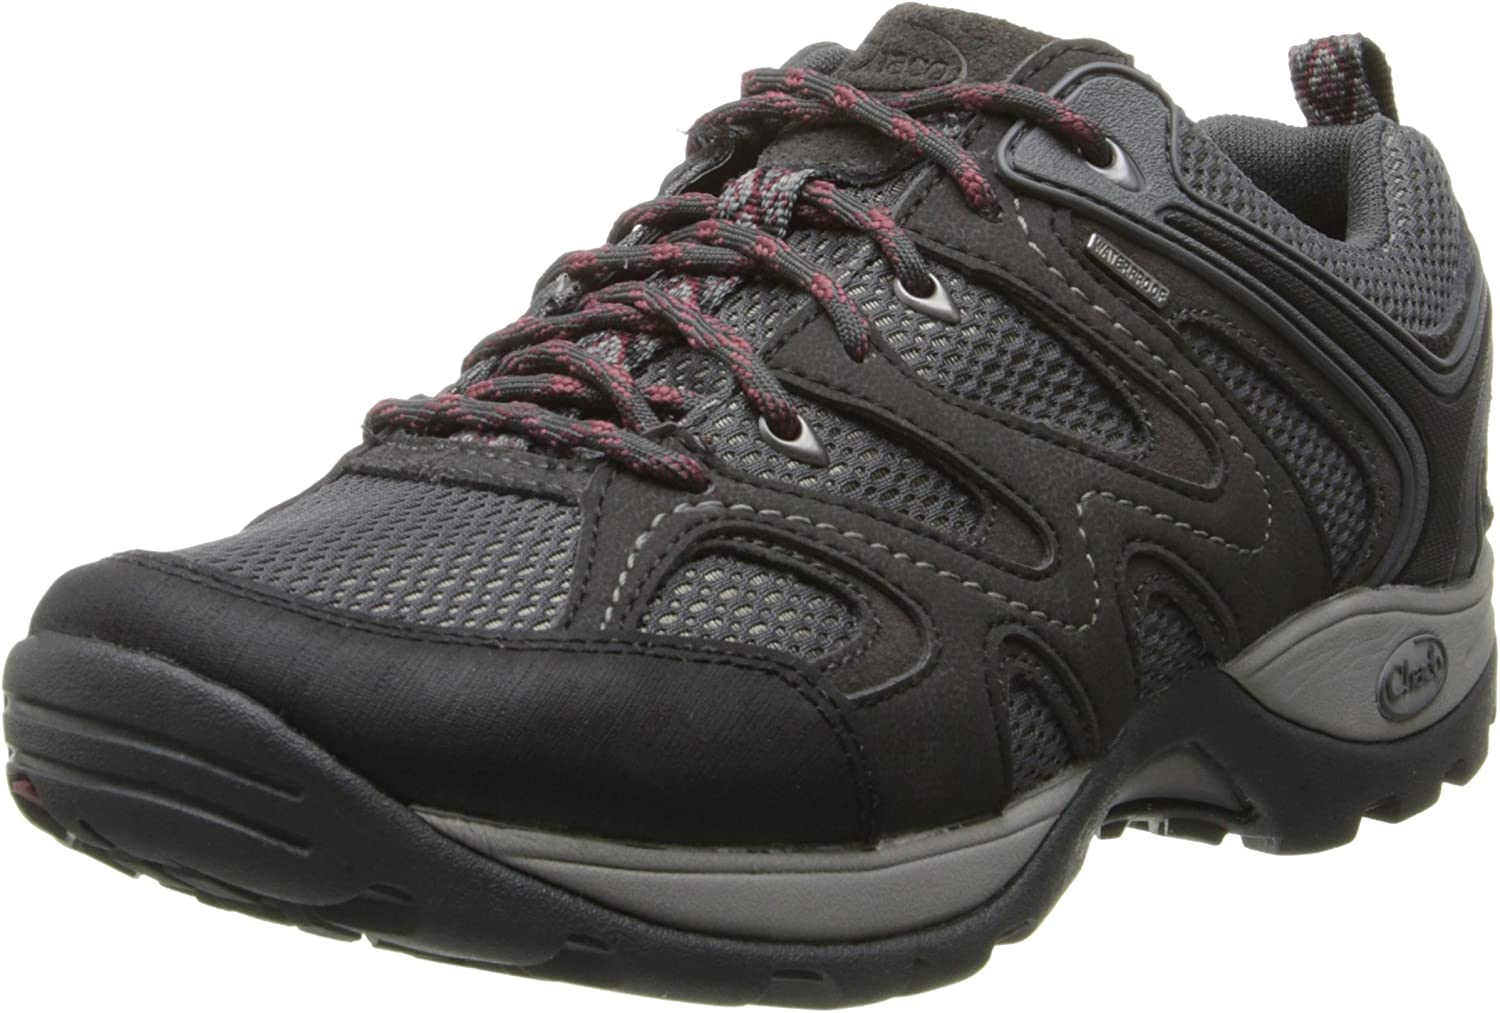 Zapatillas de trail running impermeables Layna para mujer, color ...